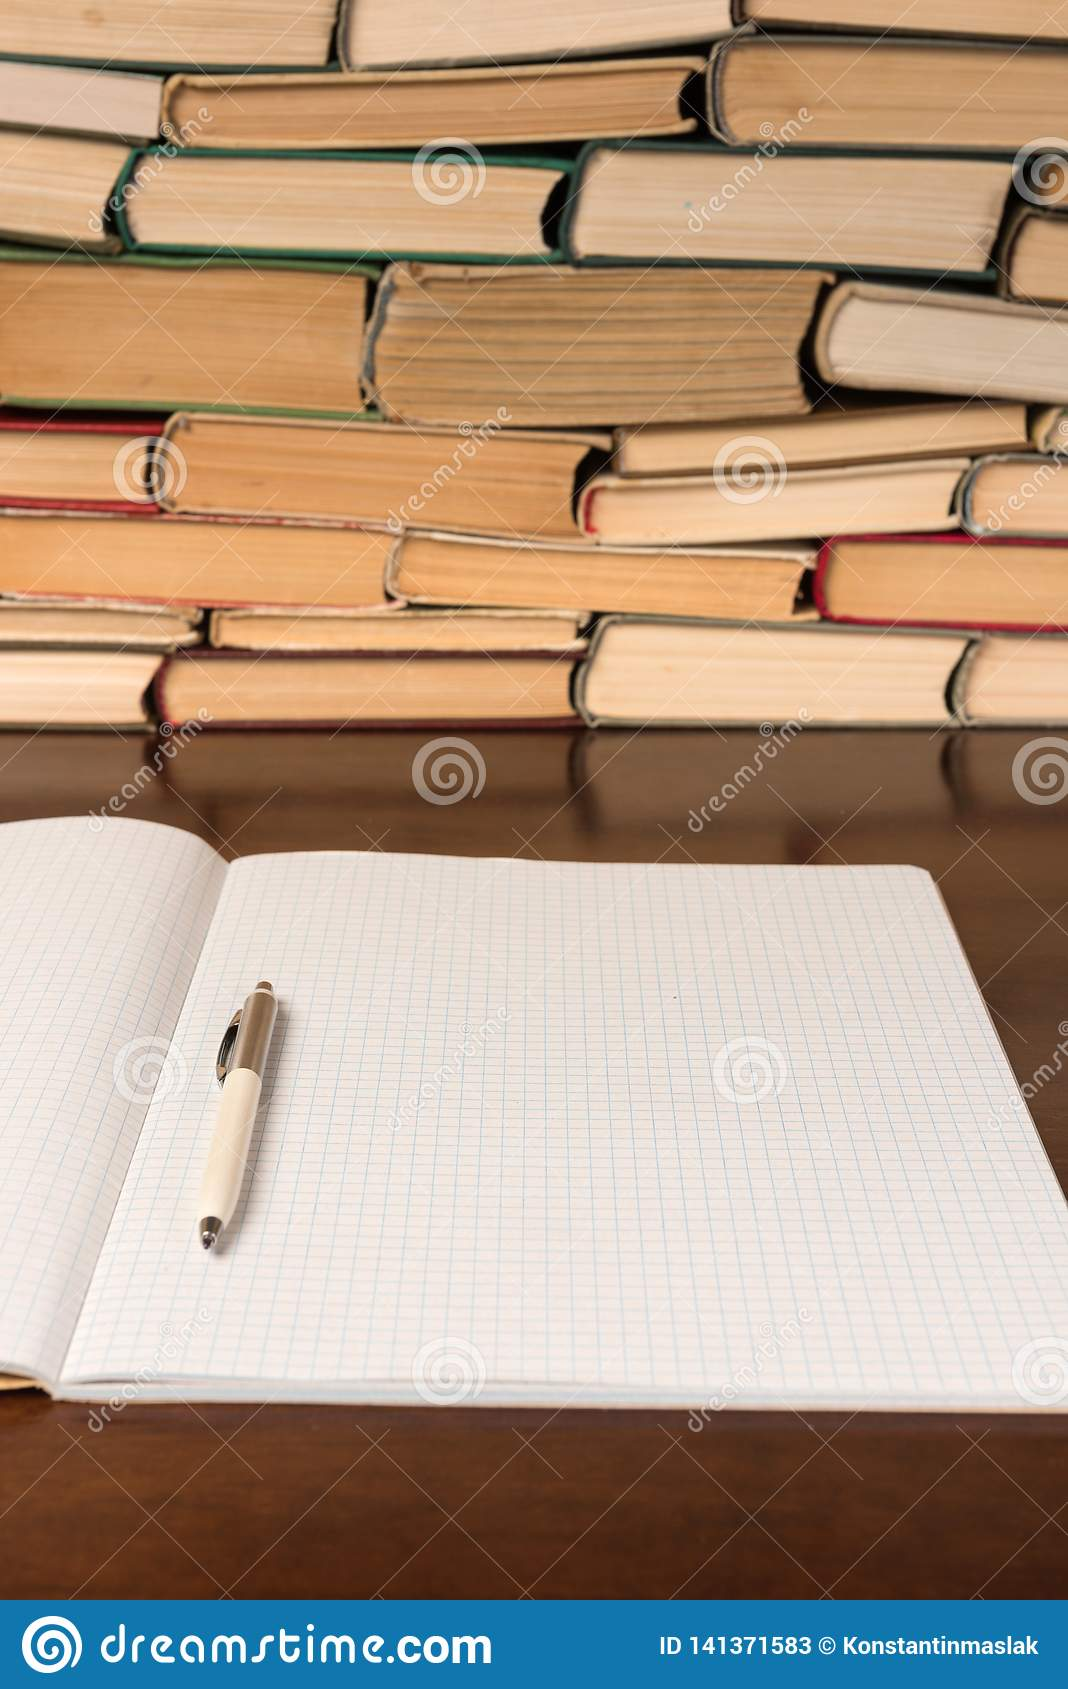 Blank Notepad On The Table With Books Stock Image - Image of diary, education: 141371583